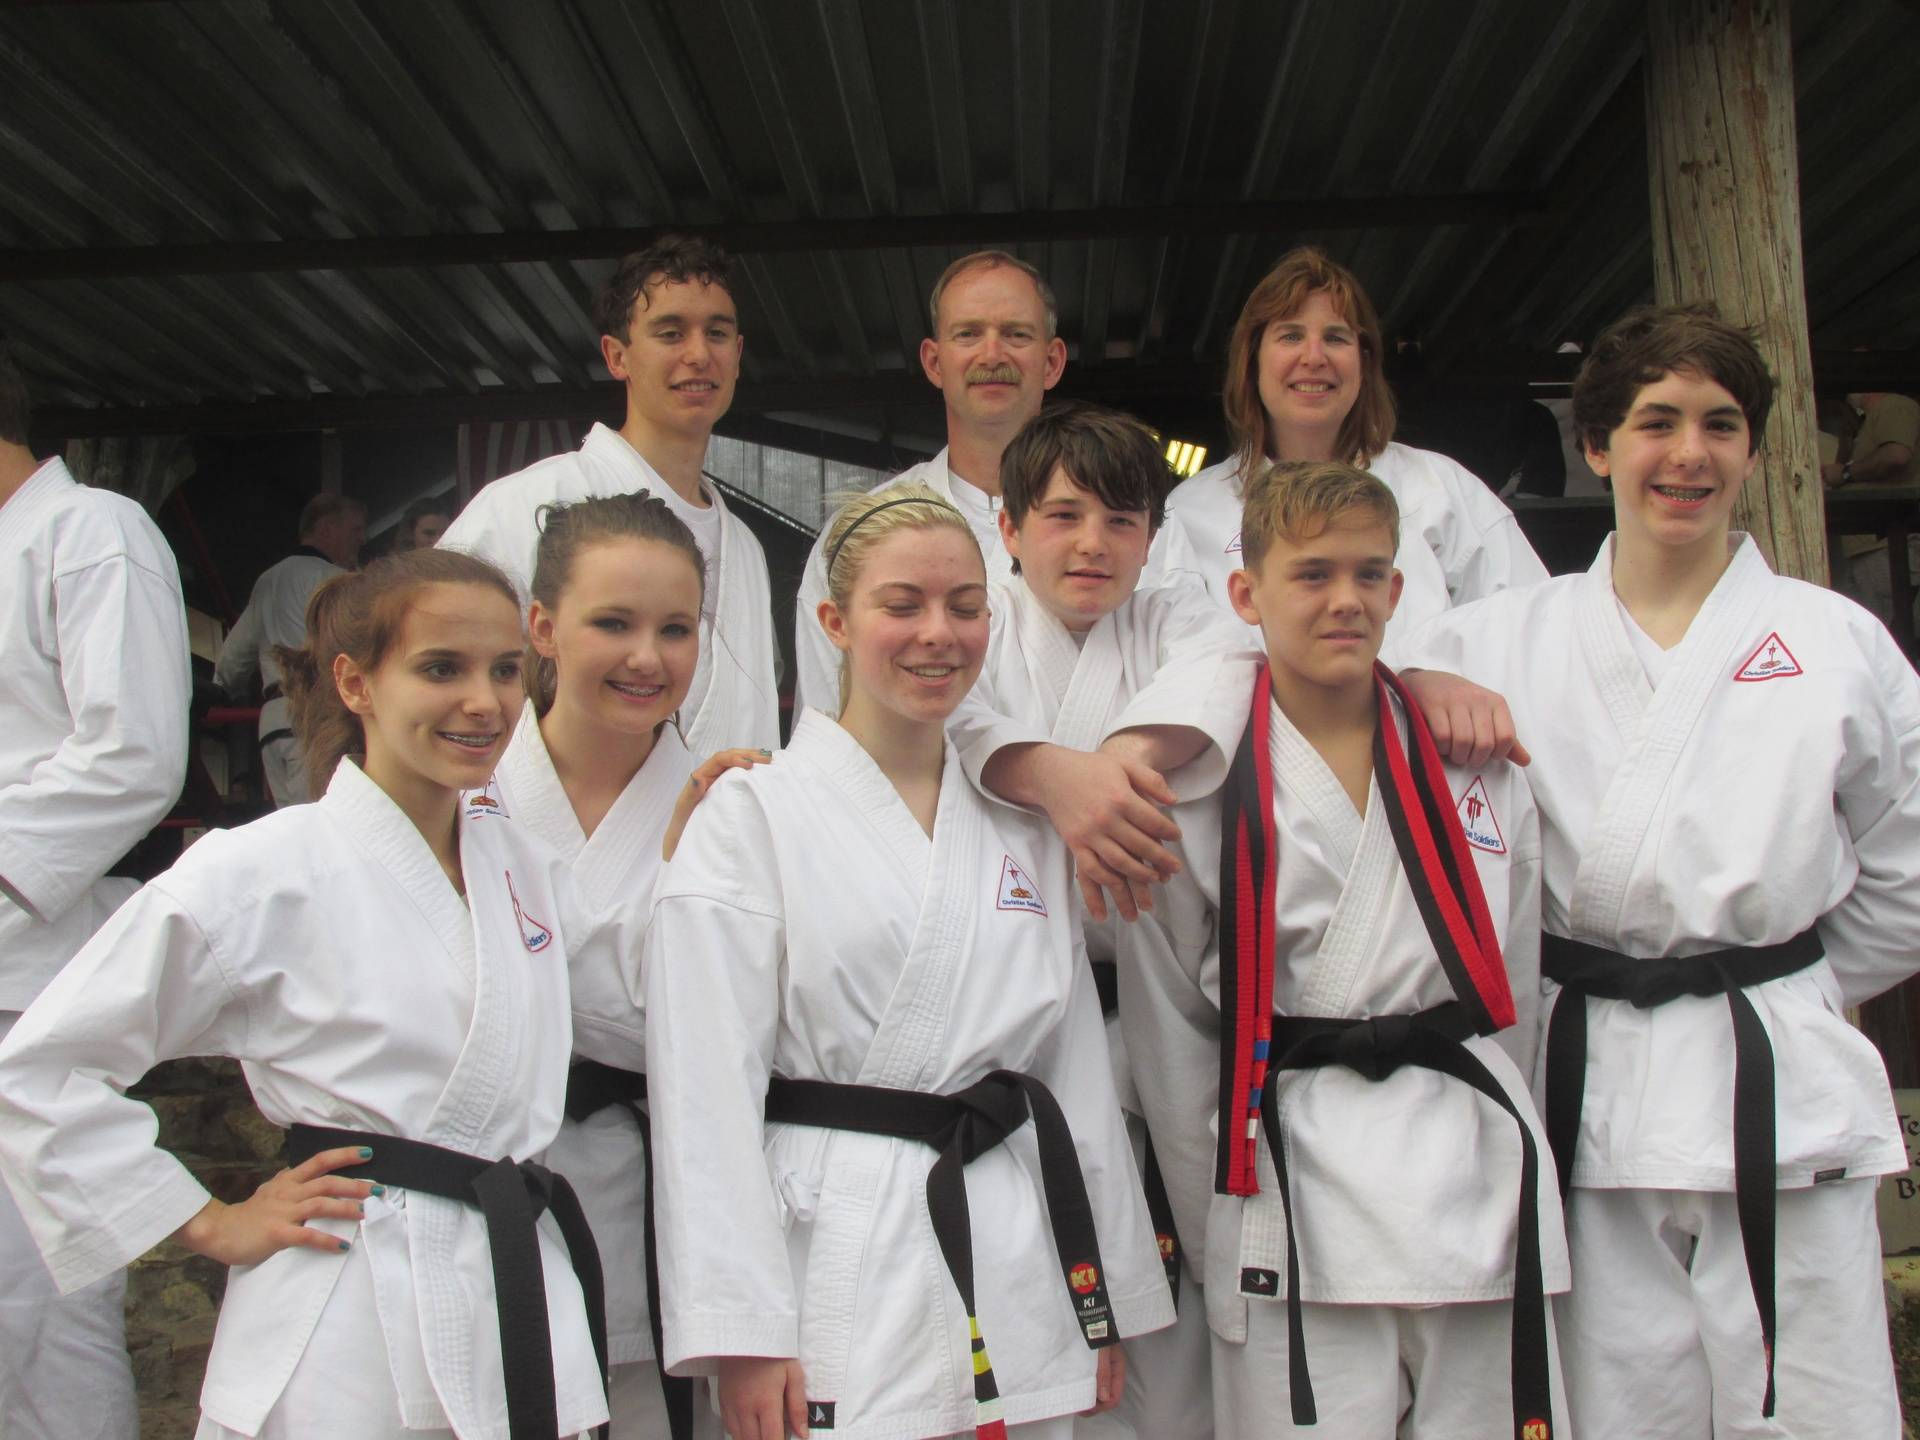 1st & 2nd Degree Black belts earned